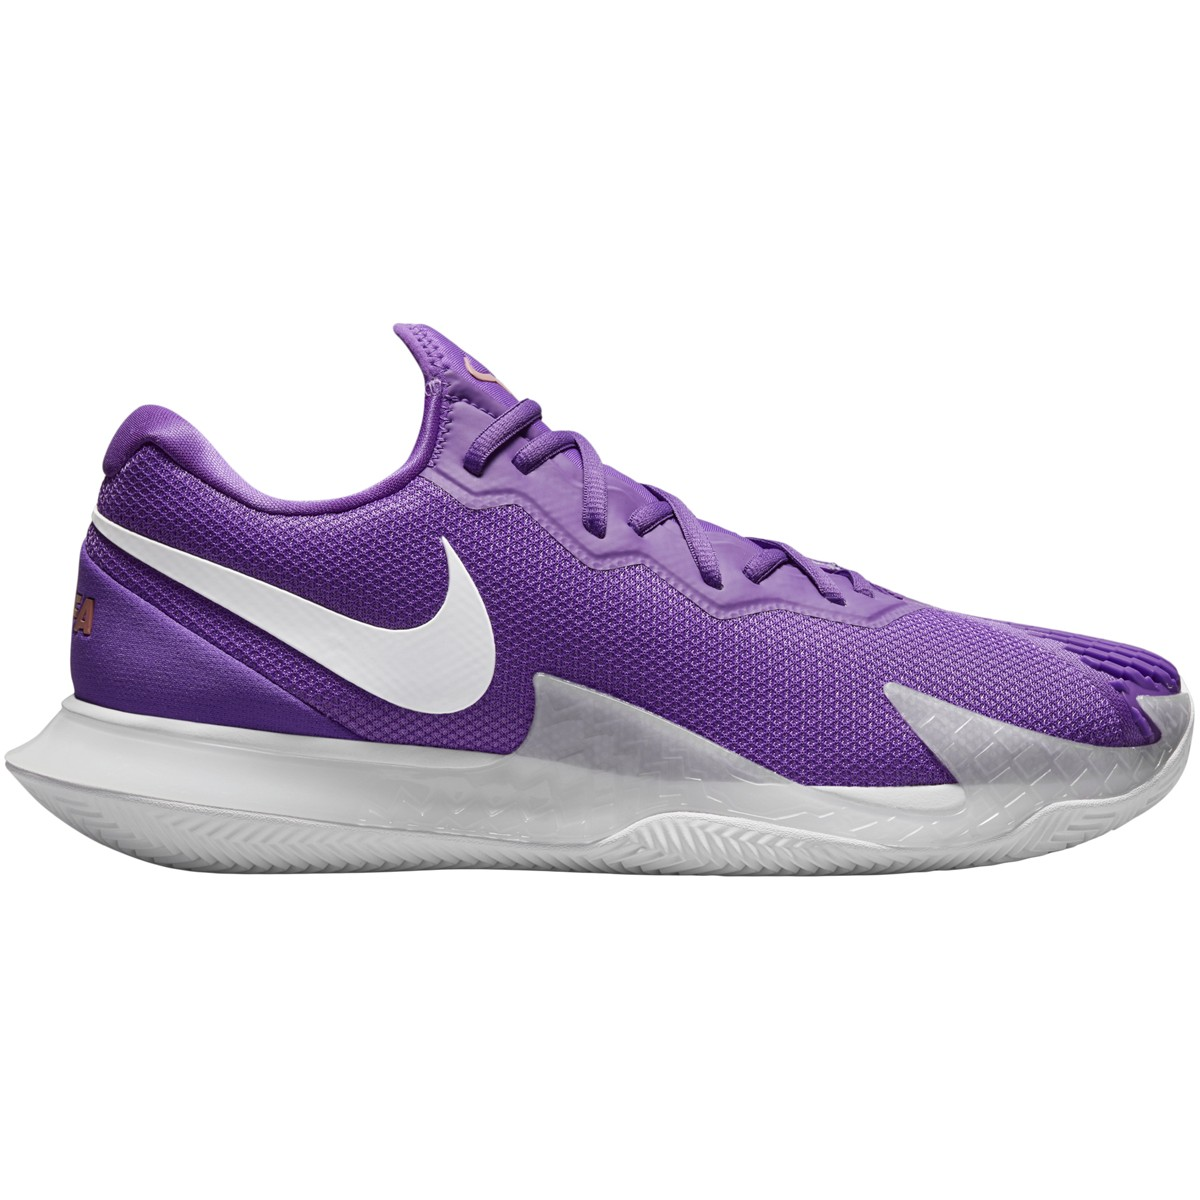 NIKE ZOOM VAPOR CAGE 4 NADAL CLAY COURT SHOES - NIKE - Men's ...